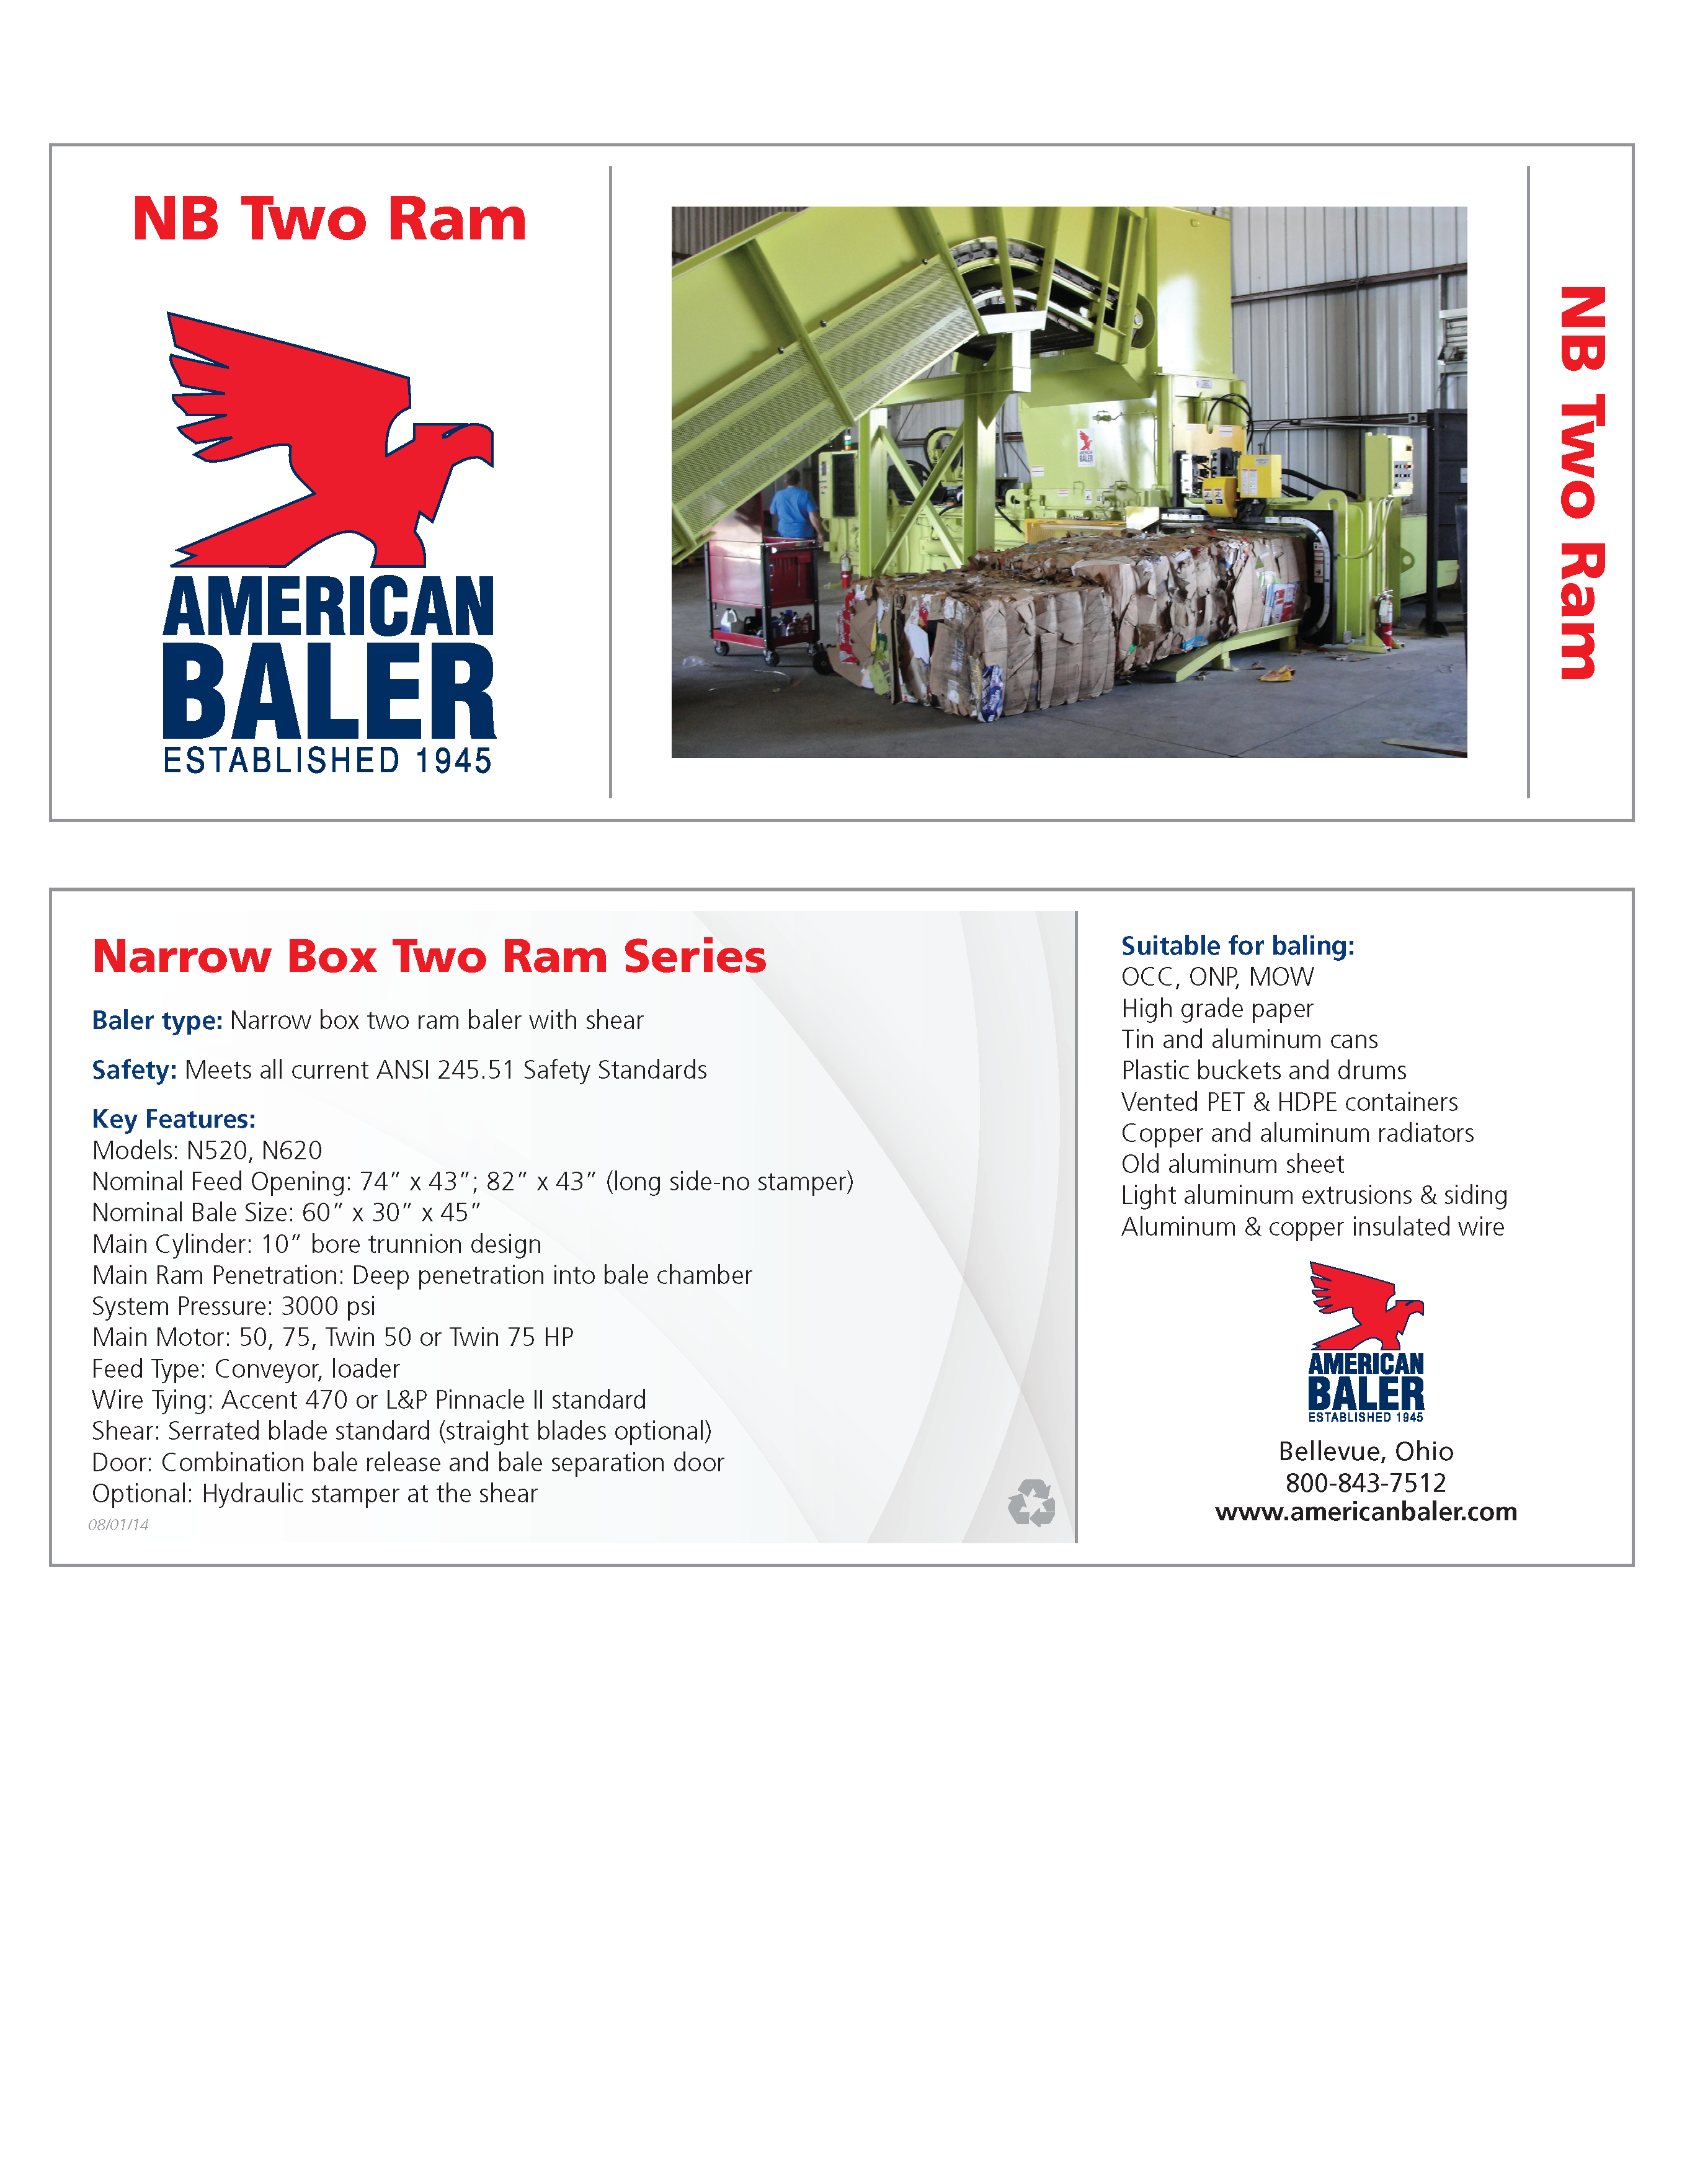 Learn more about the NB Series Balers in the American Baler Brochure